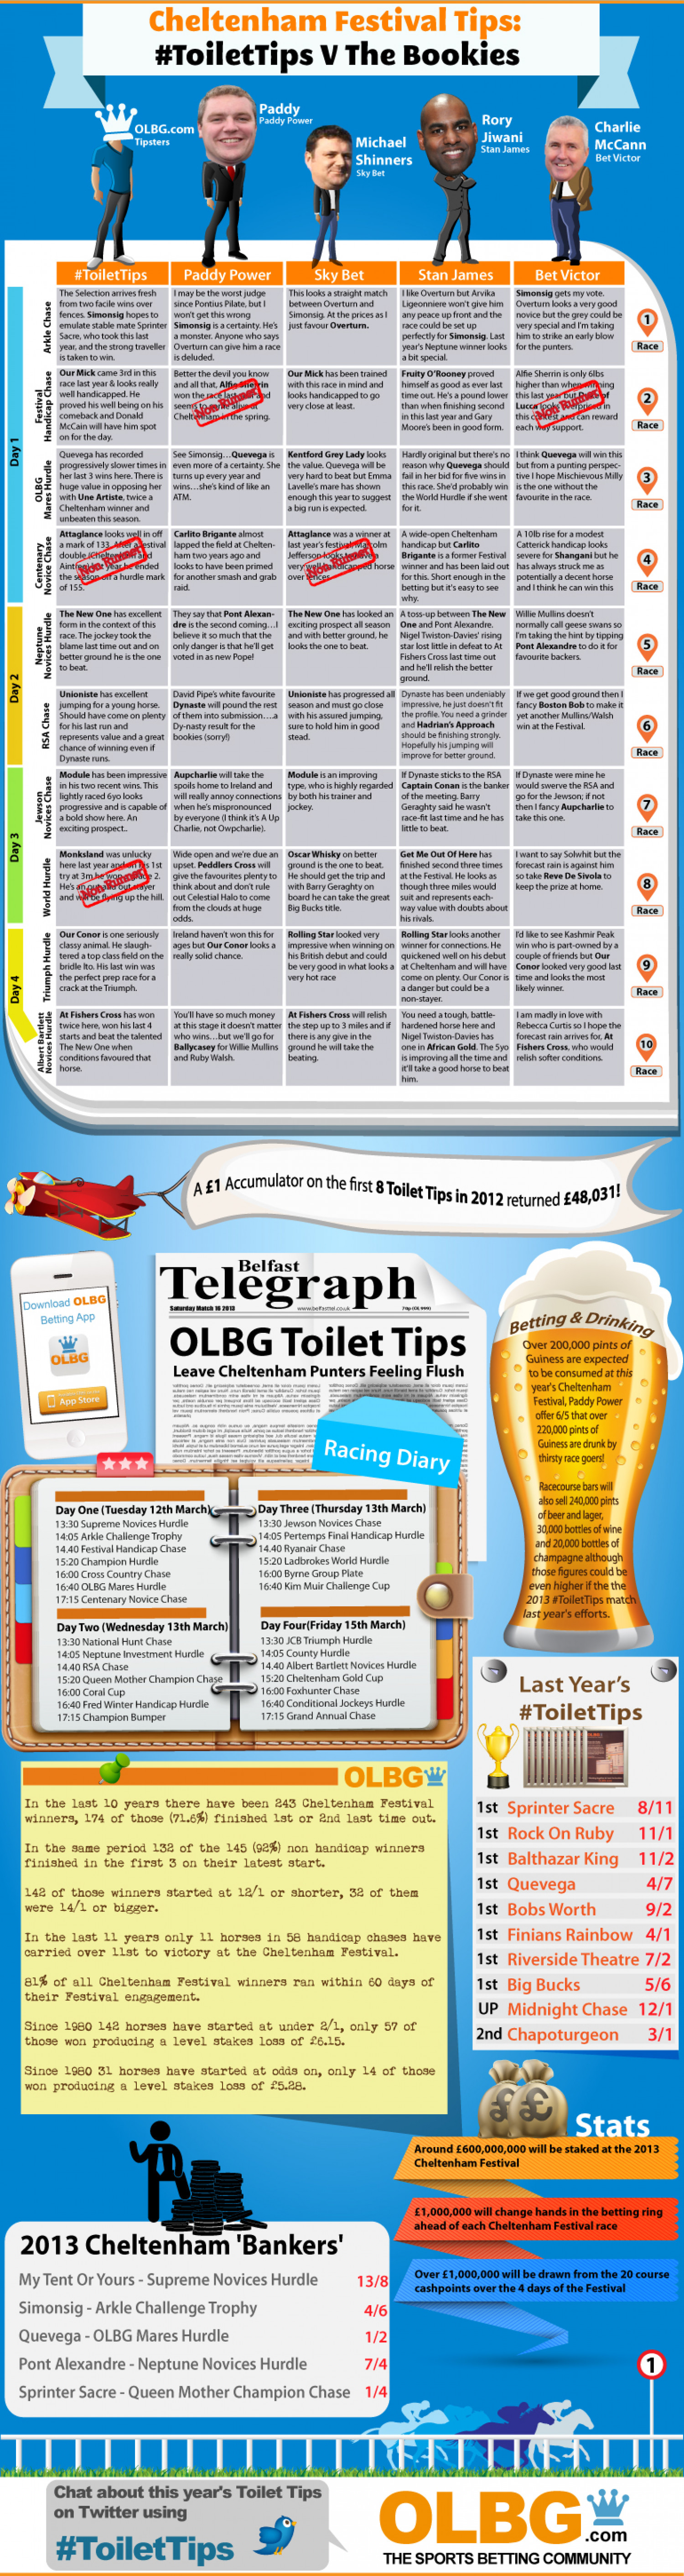 Cheltenham Festival Tips: #ToiletTips v The Bookies Infographic